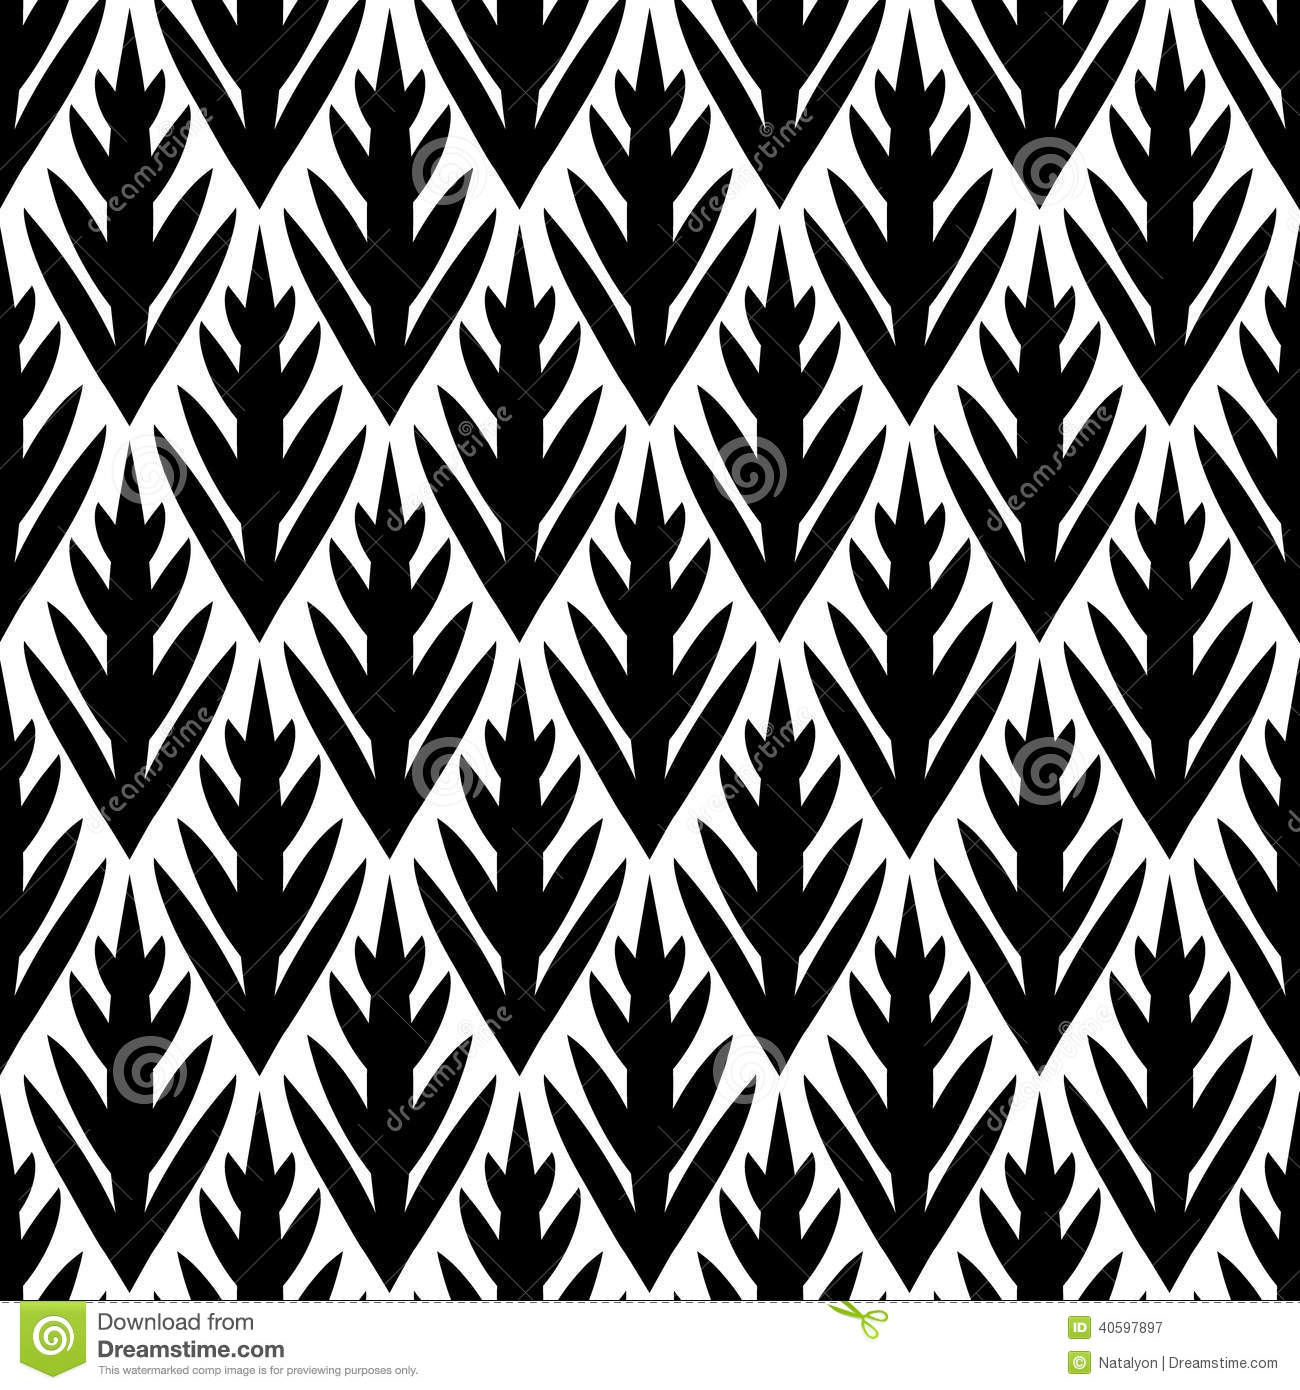 black and white simple trees geometric ikat seamless pattern